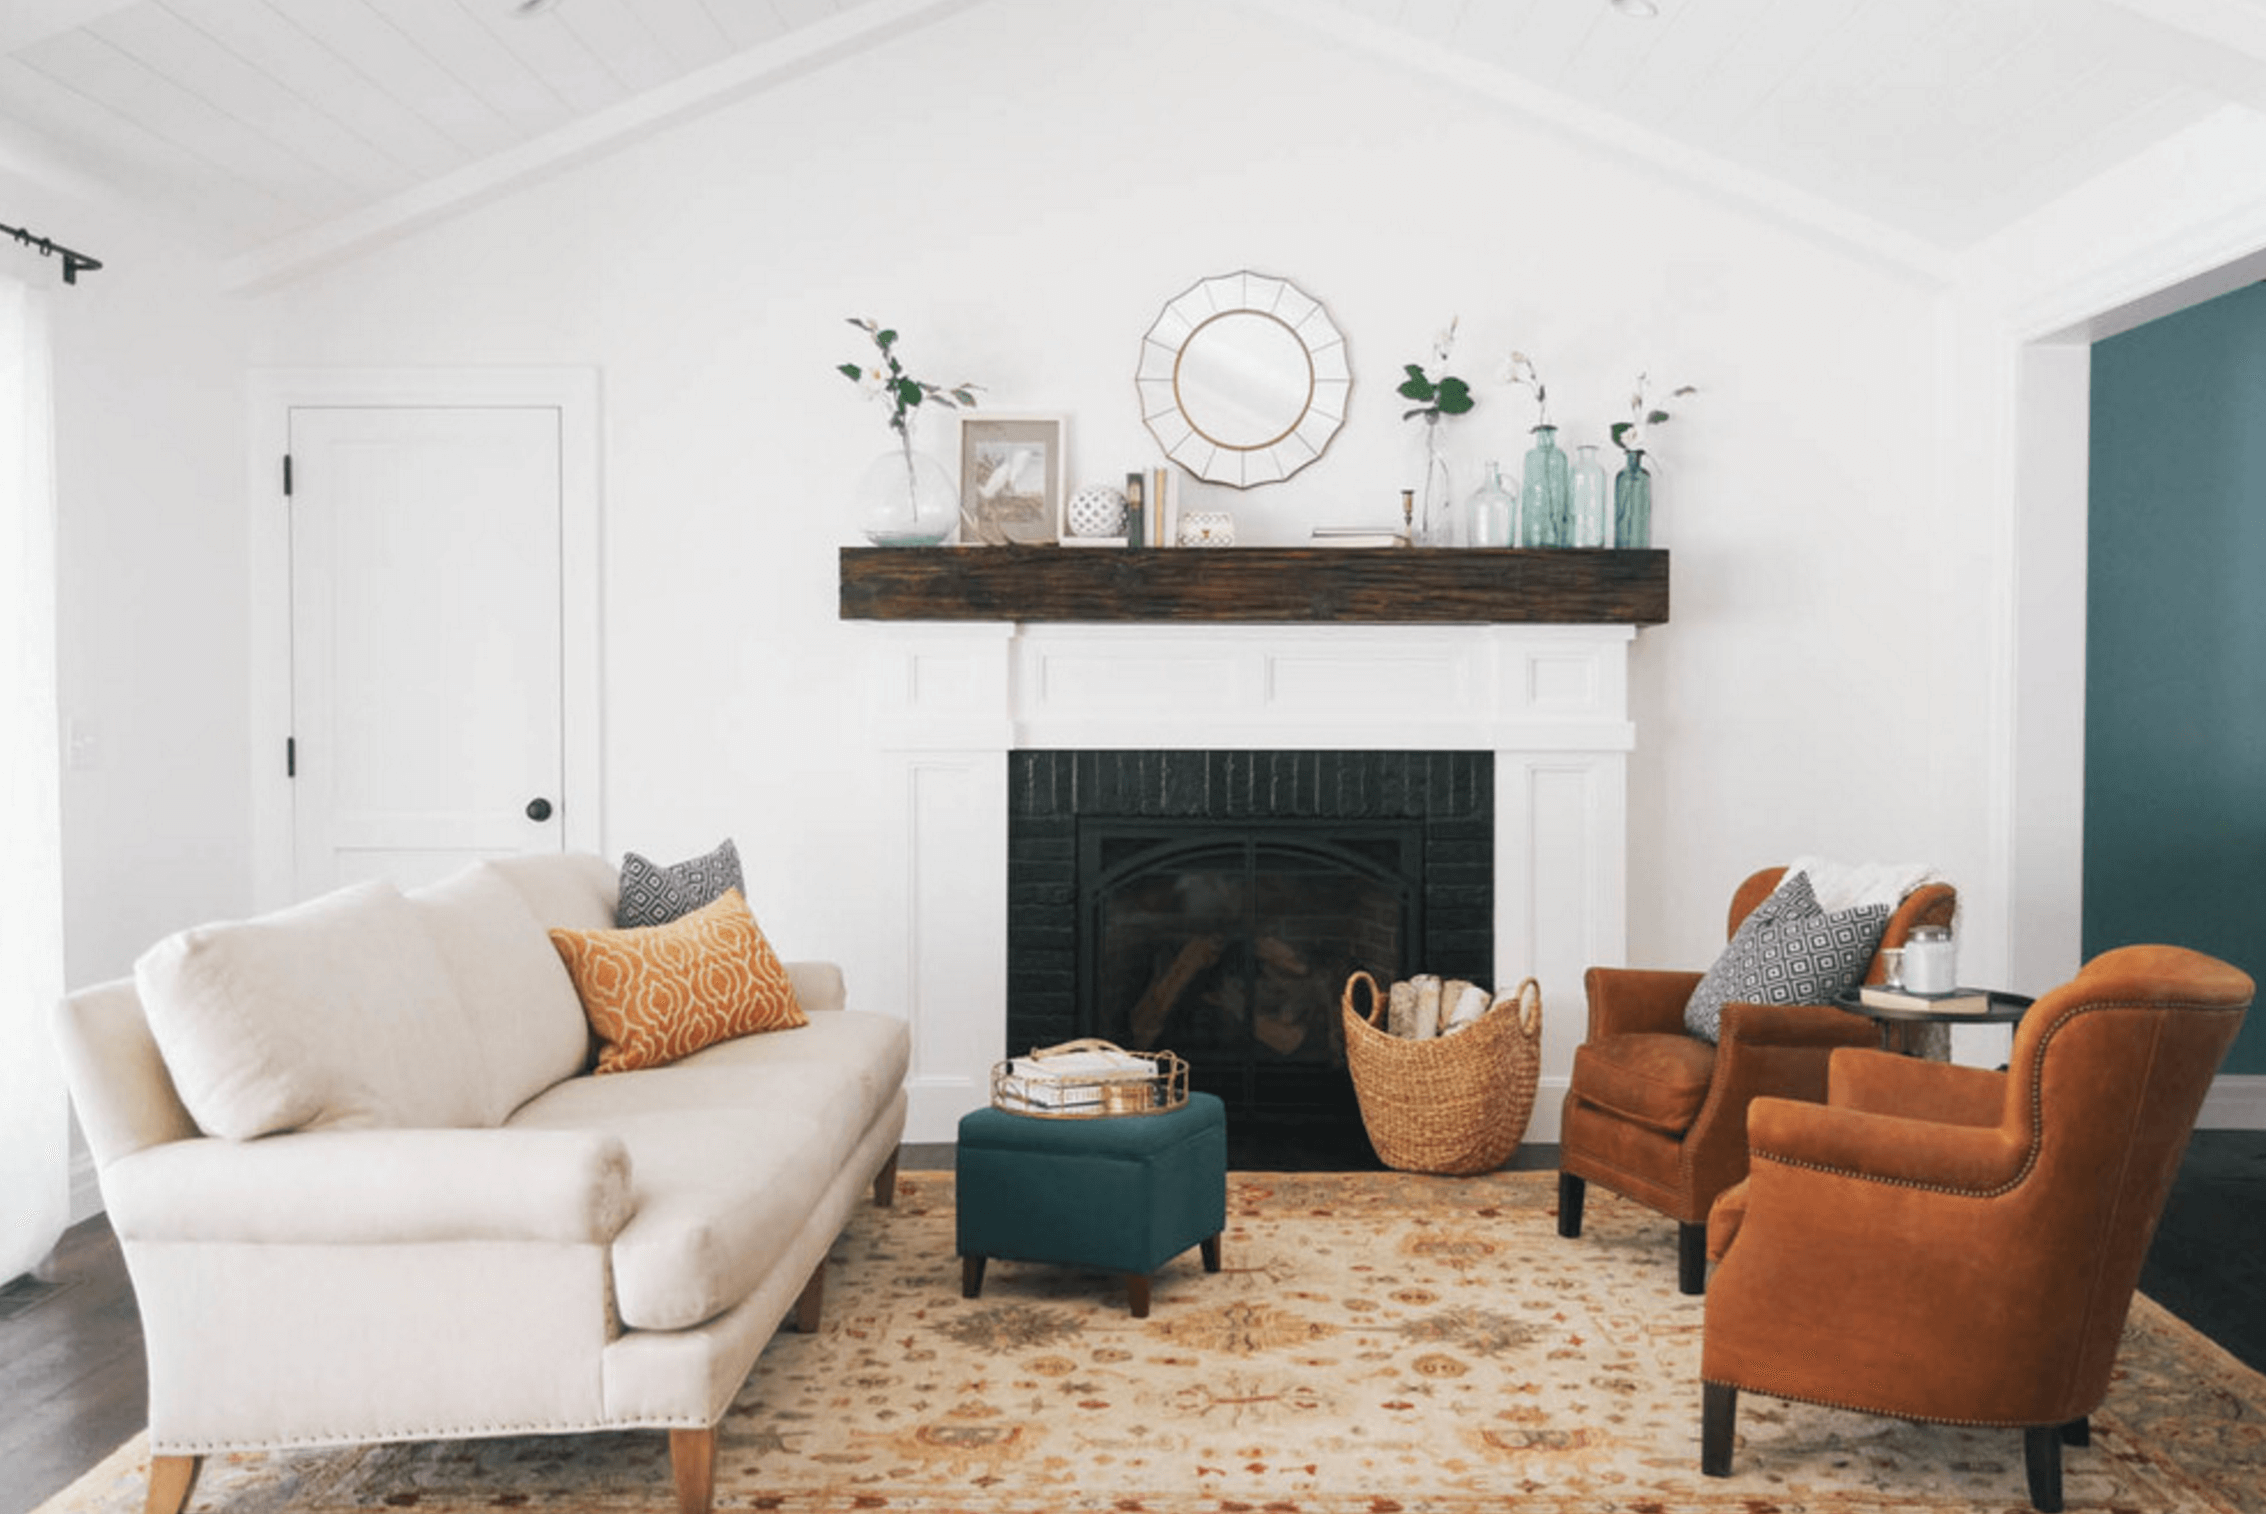 we've rounded up the best mantel decorating ideas to keep your